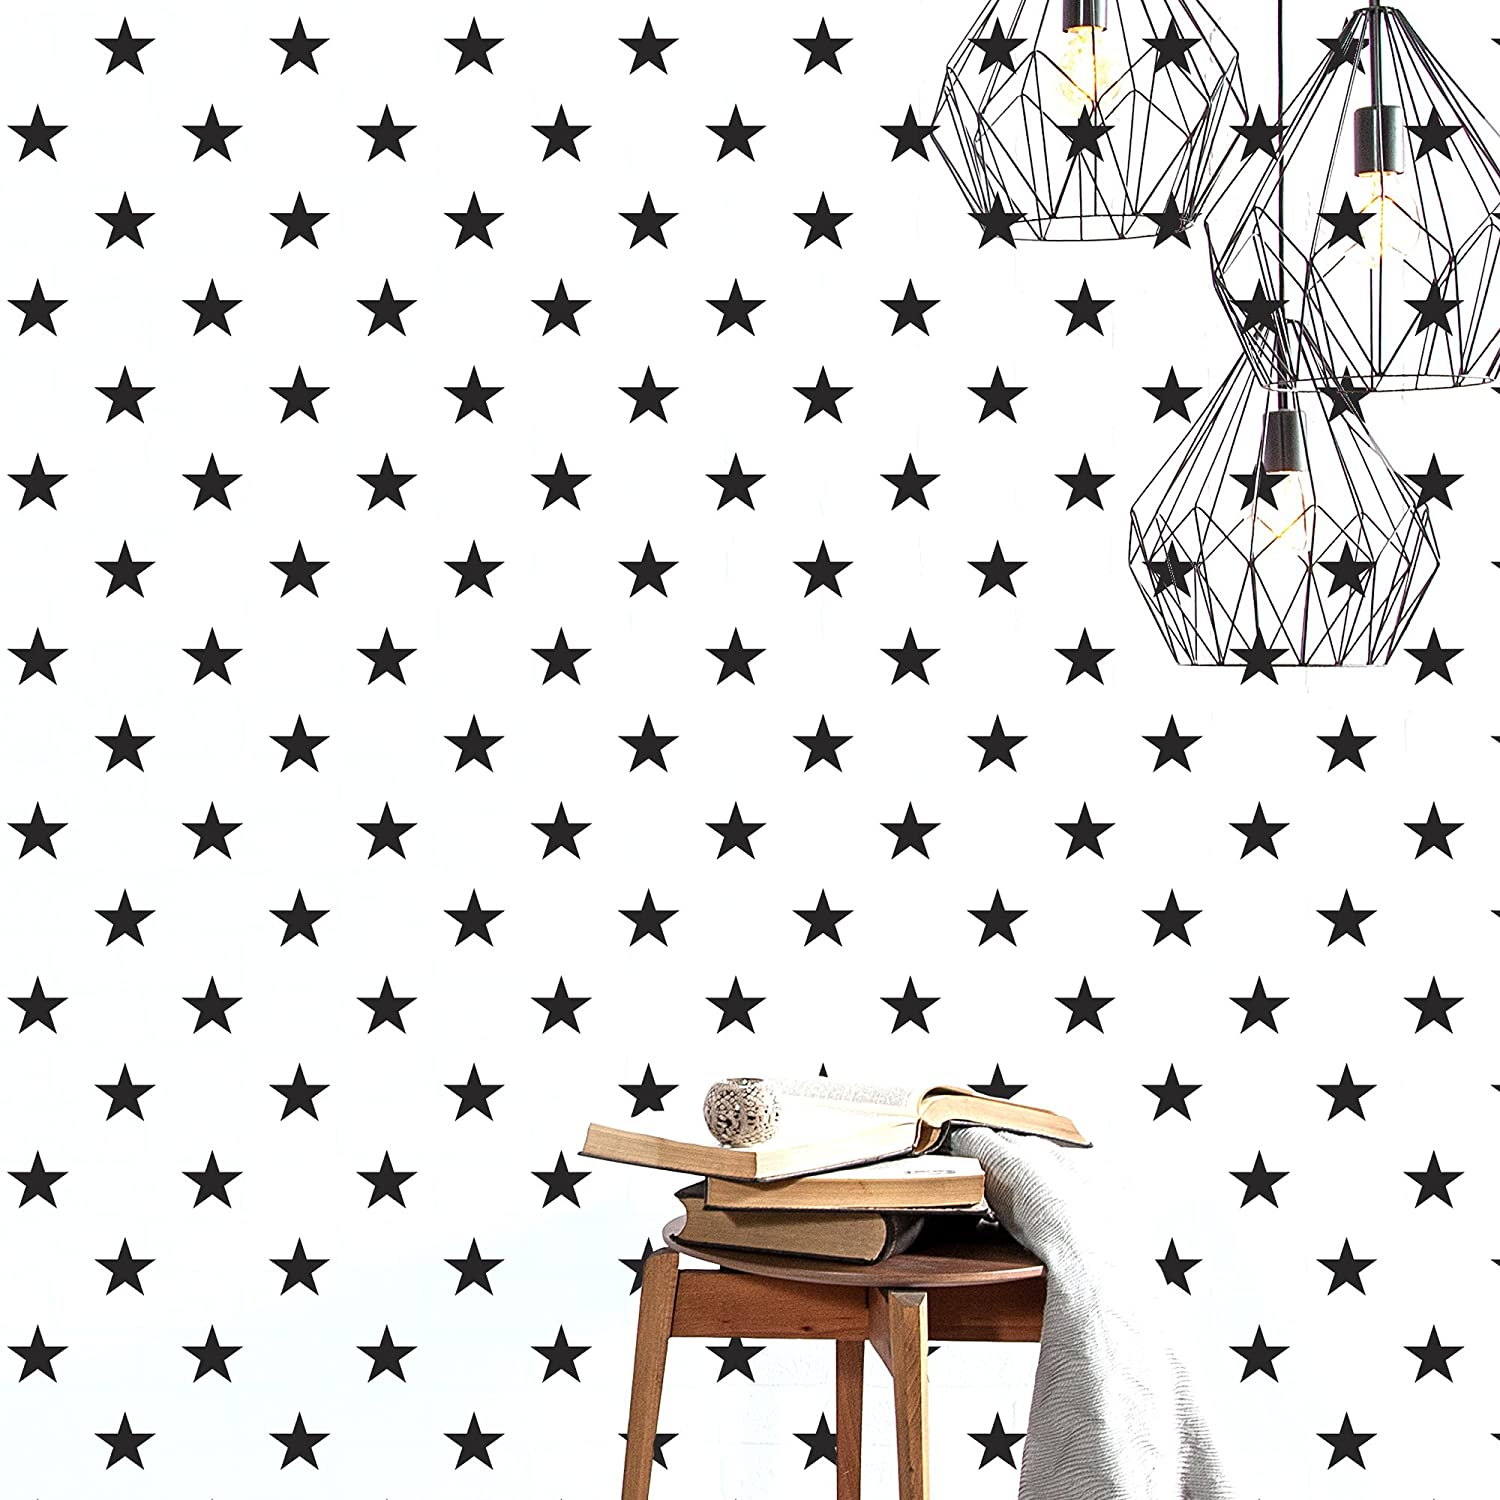 AdzifLucky Star Wall Decals Multicolored